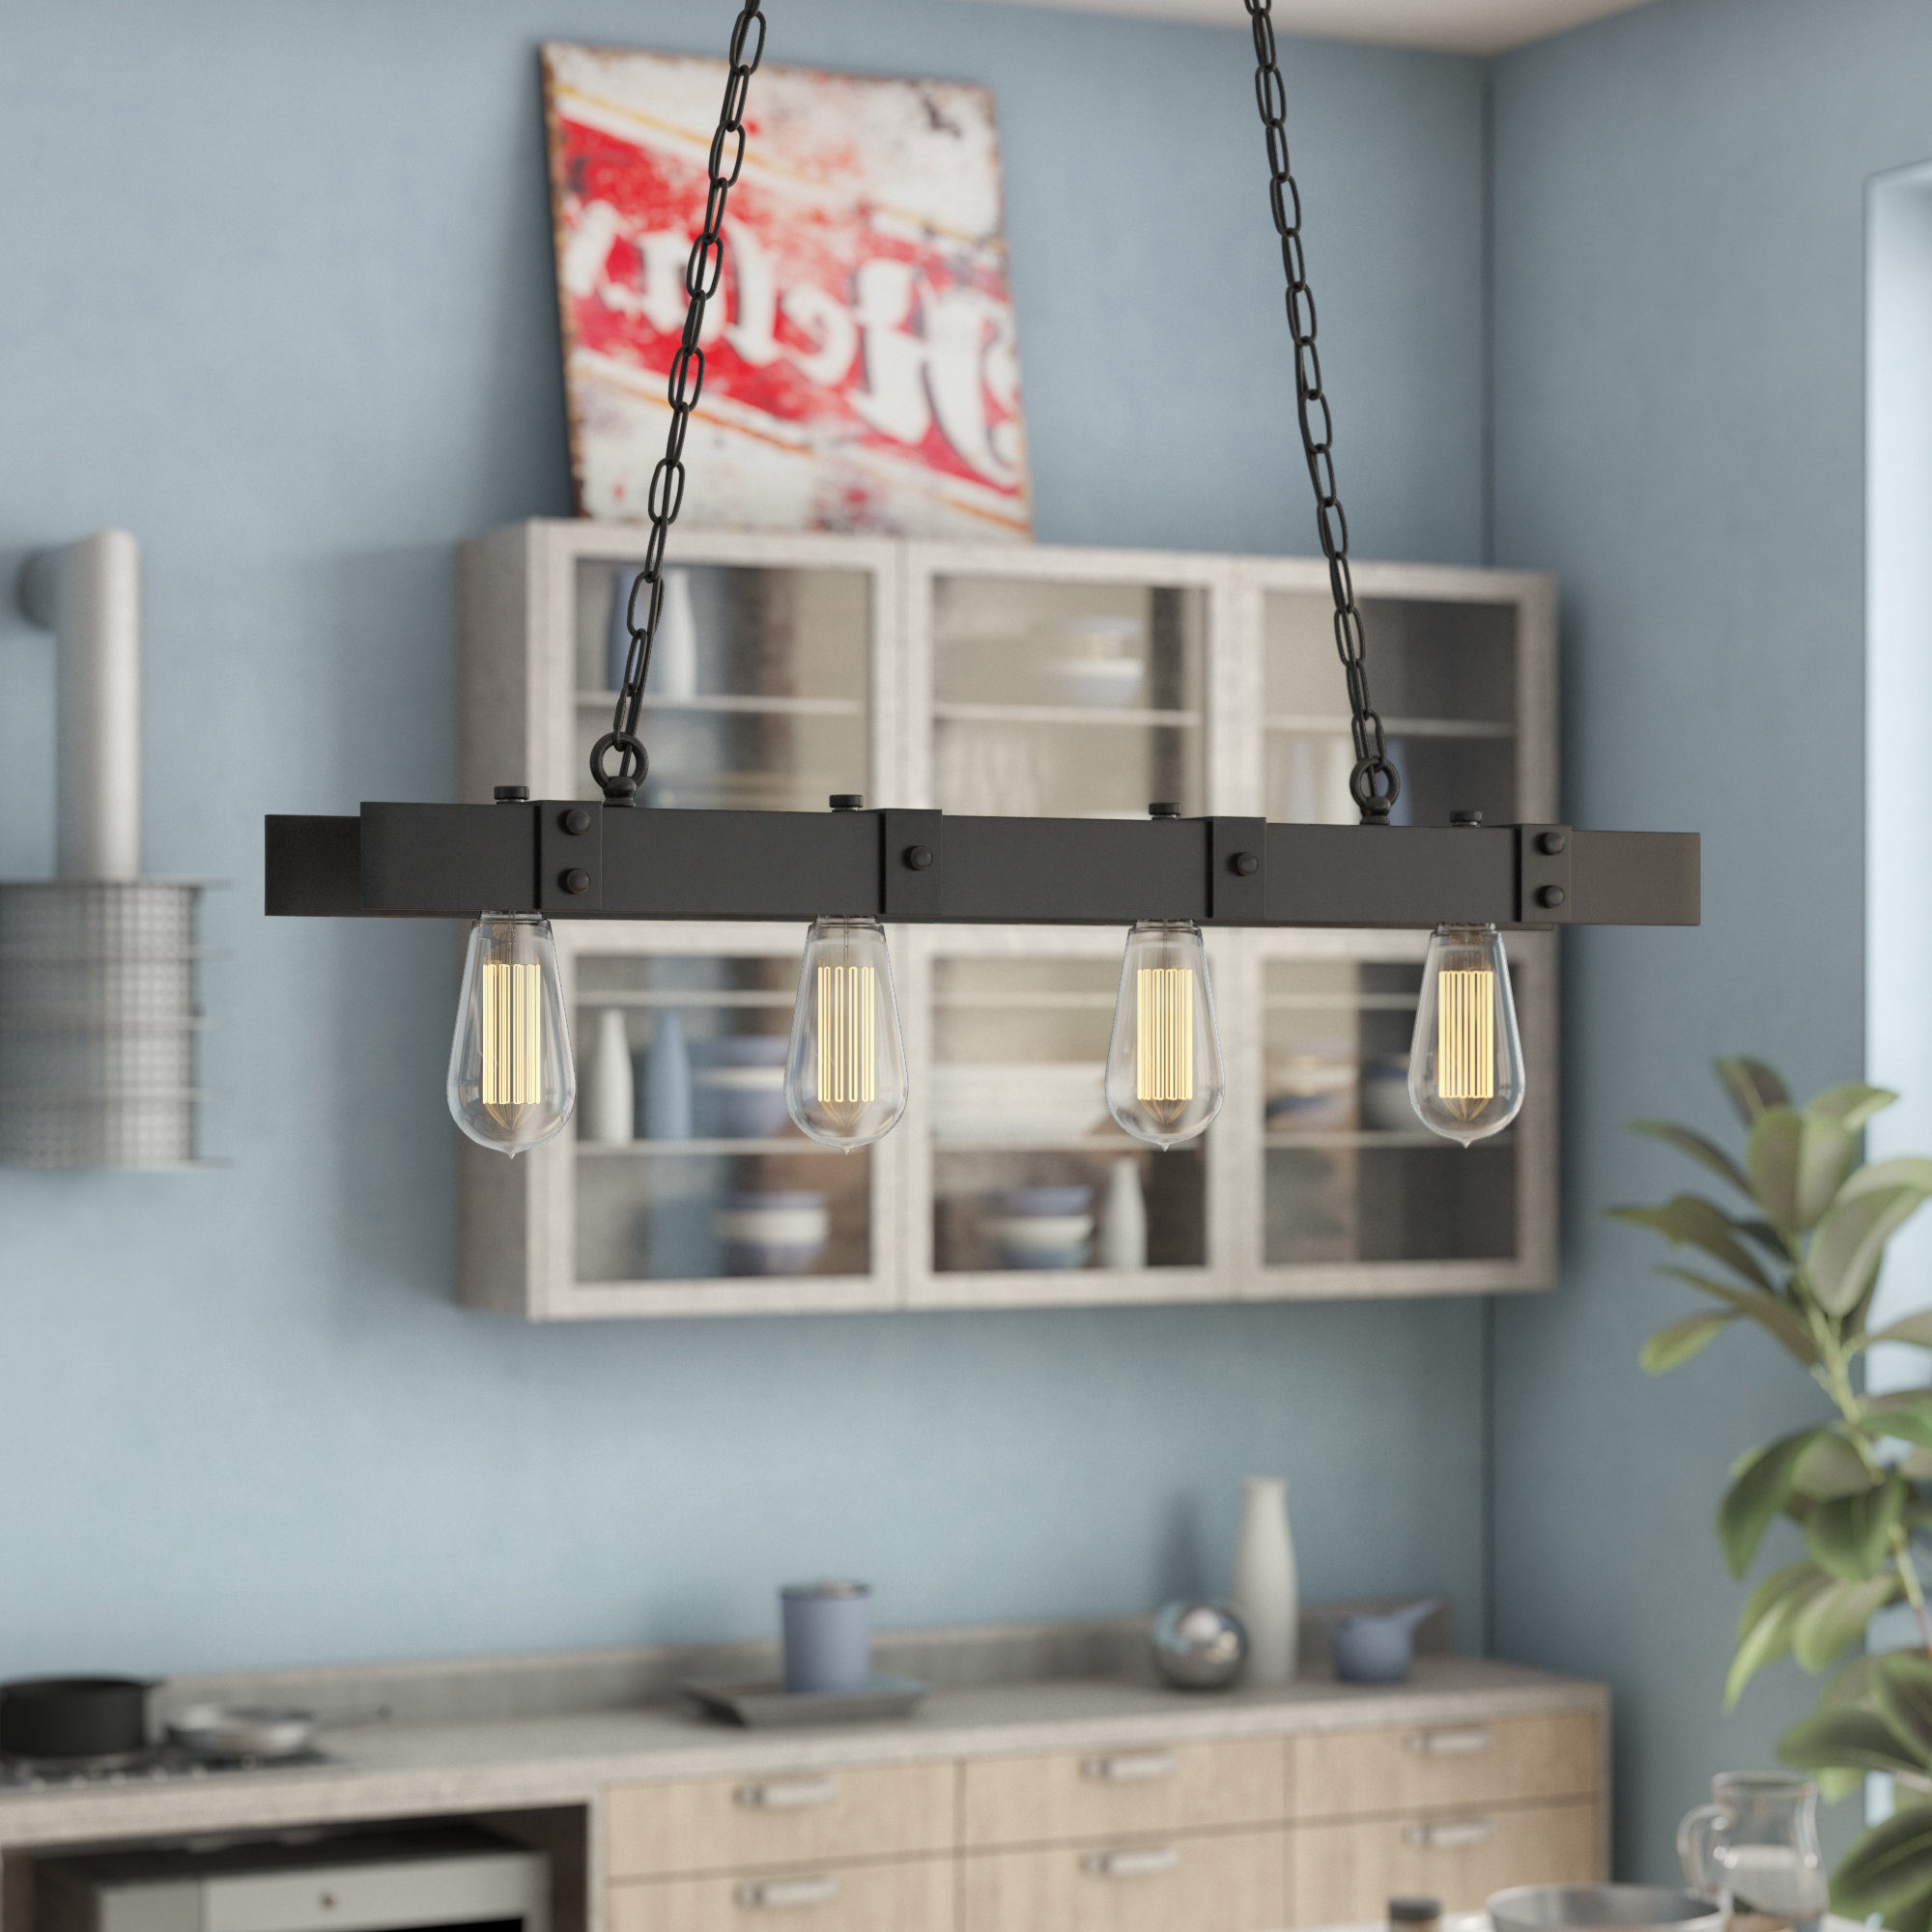 Schutt 4 Light Kitchen Island Pendants With Regard To Popular Kitchen Island Williston Forge Pendant Lighting You'll Love (View 3 of 25)